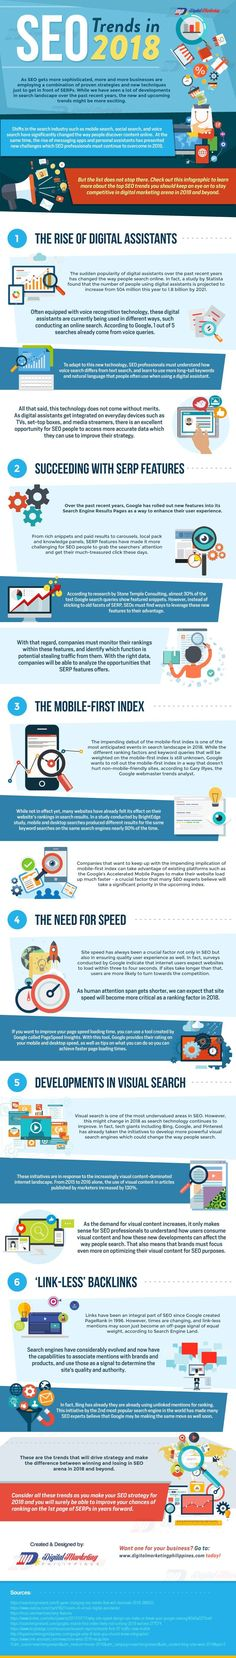 6 SEO Trends for 2018 - Infographic Shared by VERTI GROUP INTERNATIONAL A.K.A. SEO SEATTLE® - seoseattlegroup.com #contentmarketingseo